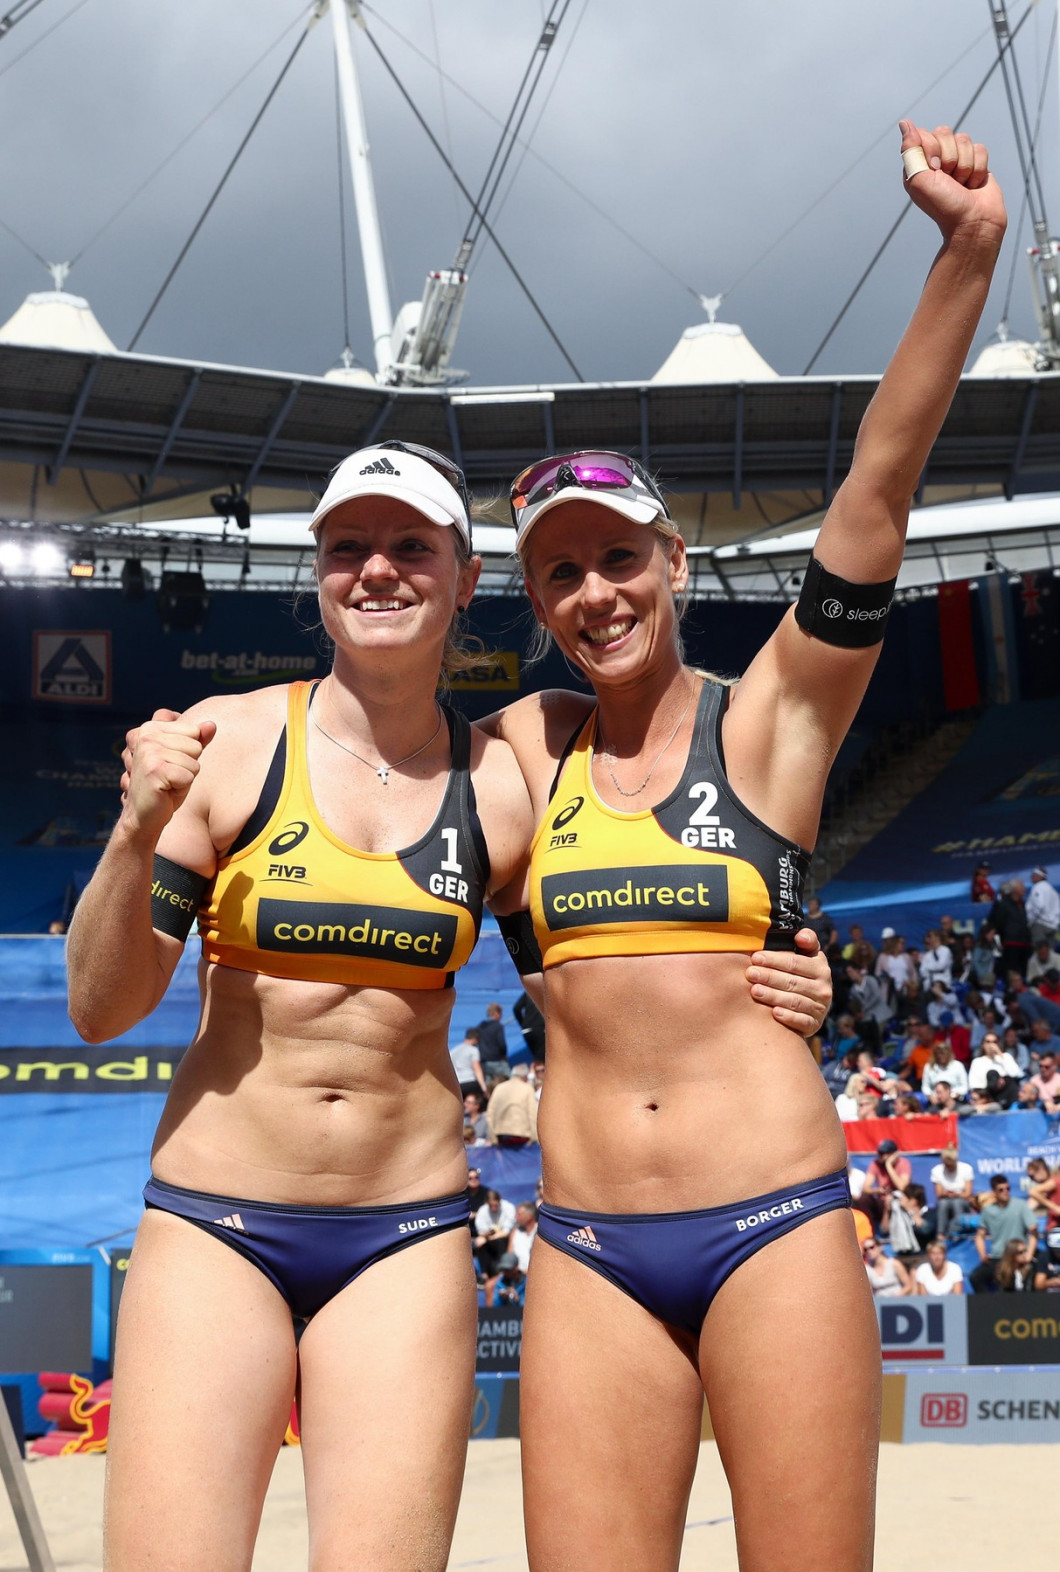 03 July 2019, Hamburg: Beach Volleyball, World Championship, at Rothenbaum Stadium: Round of 32, Women. Borger/Sude (Germany) - Behrens/Tillmann (Germany). Karla Borger and Julia Sude (l) are happy about their victory on the Center Court. Photo: Christian